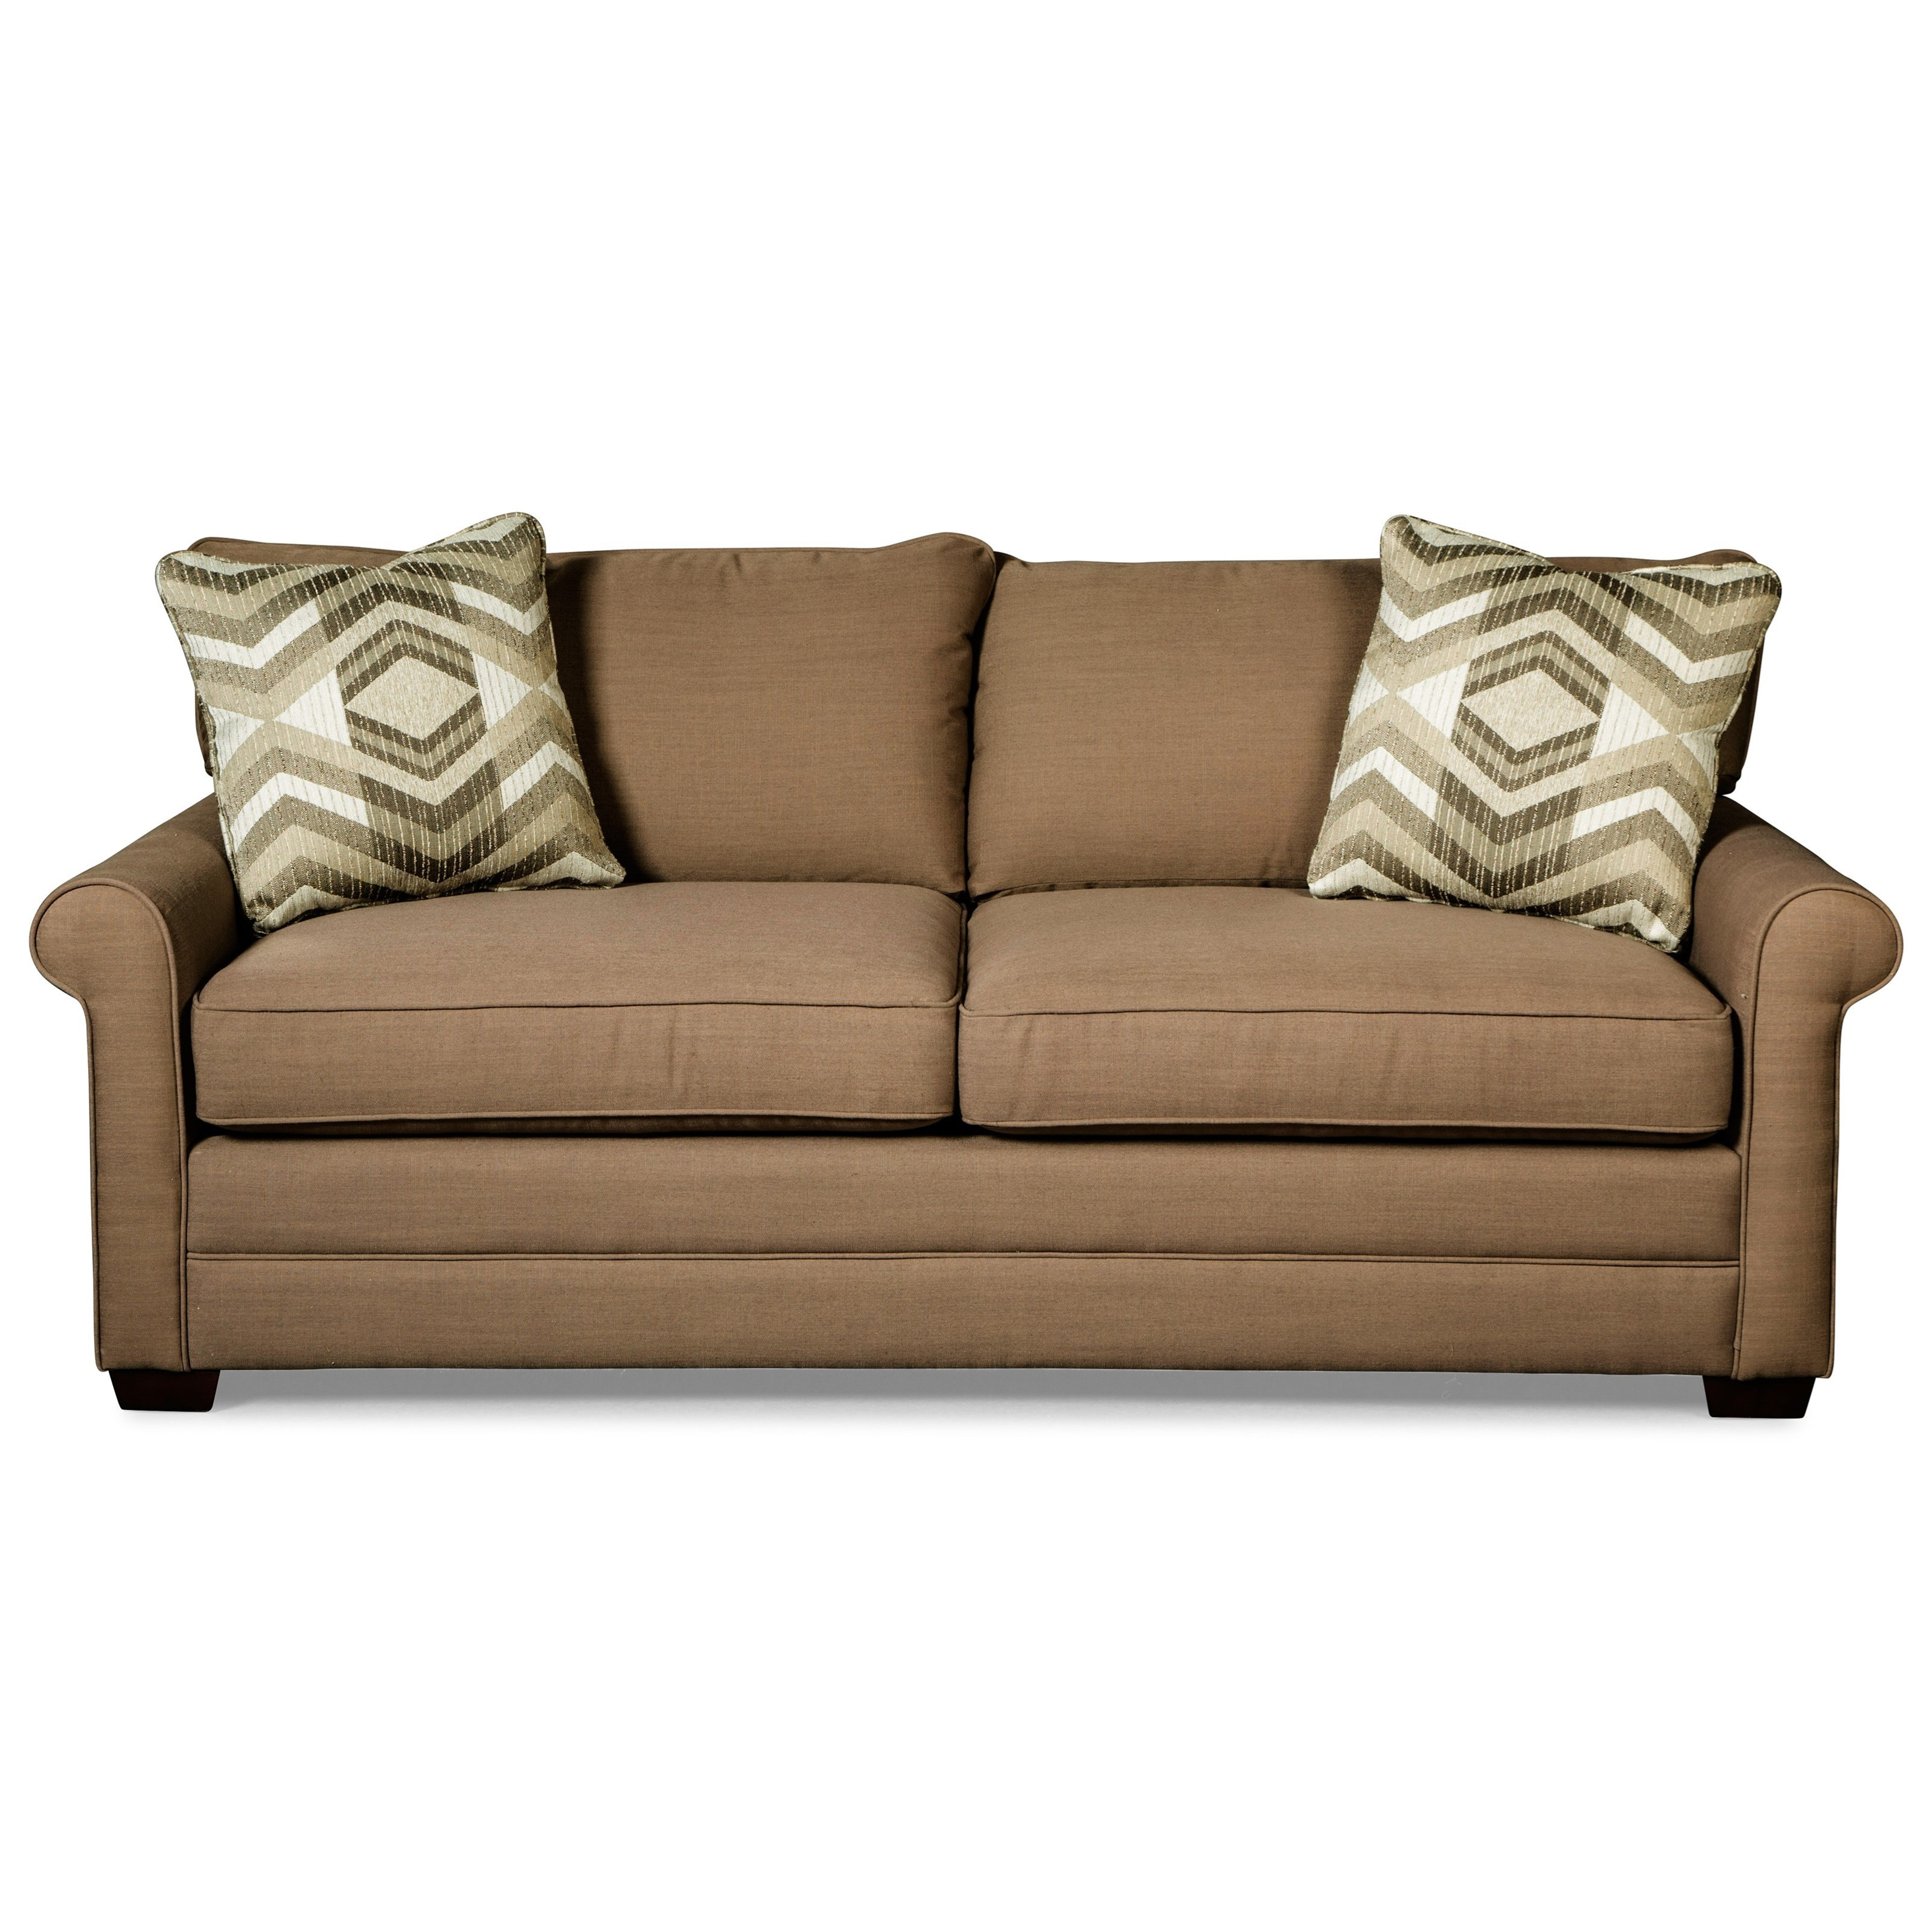 memory foam sleeper sofa mattress queen timber frame bed craftmaster 7678 casual with rolled arms and